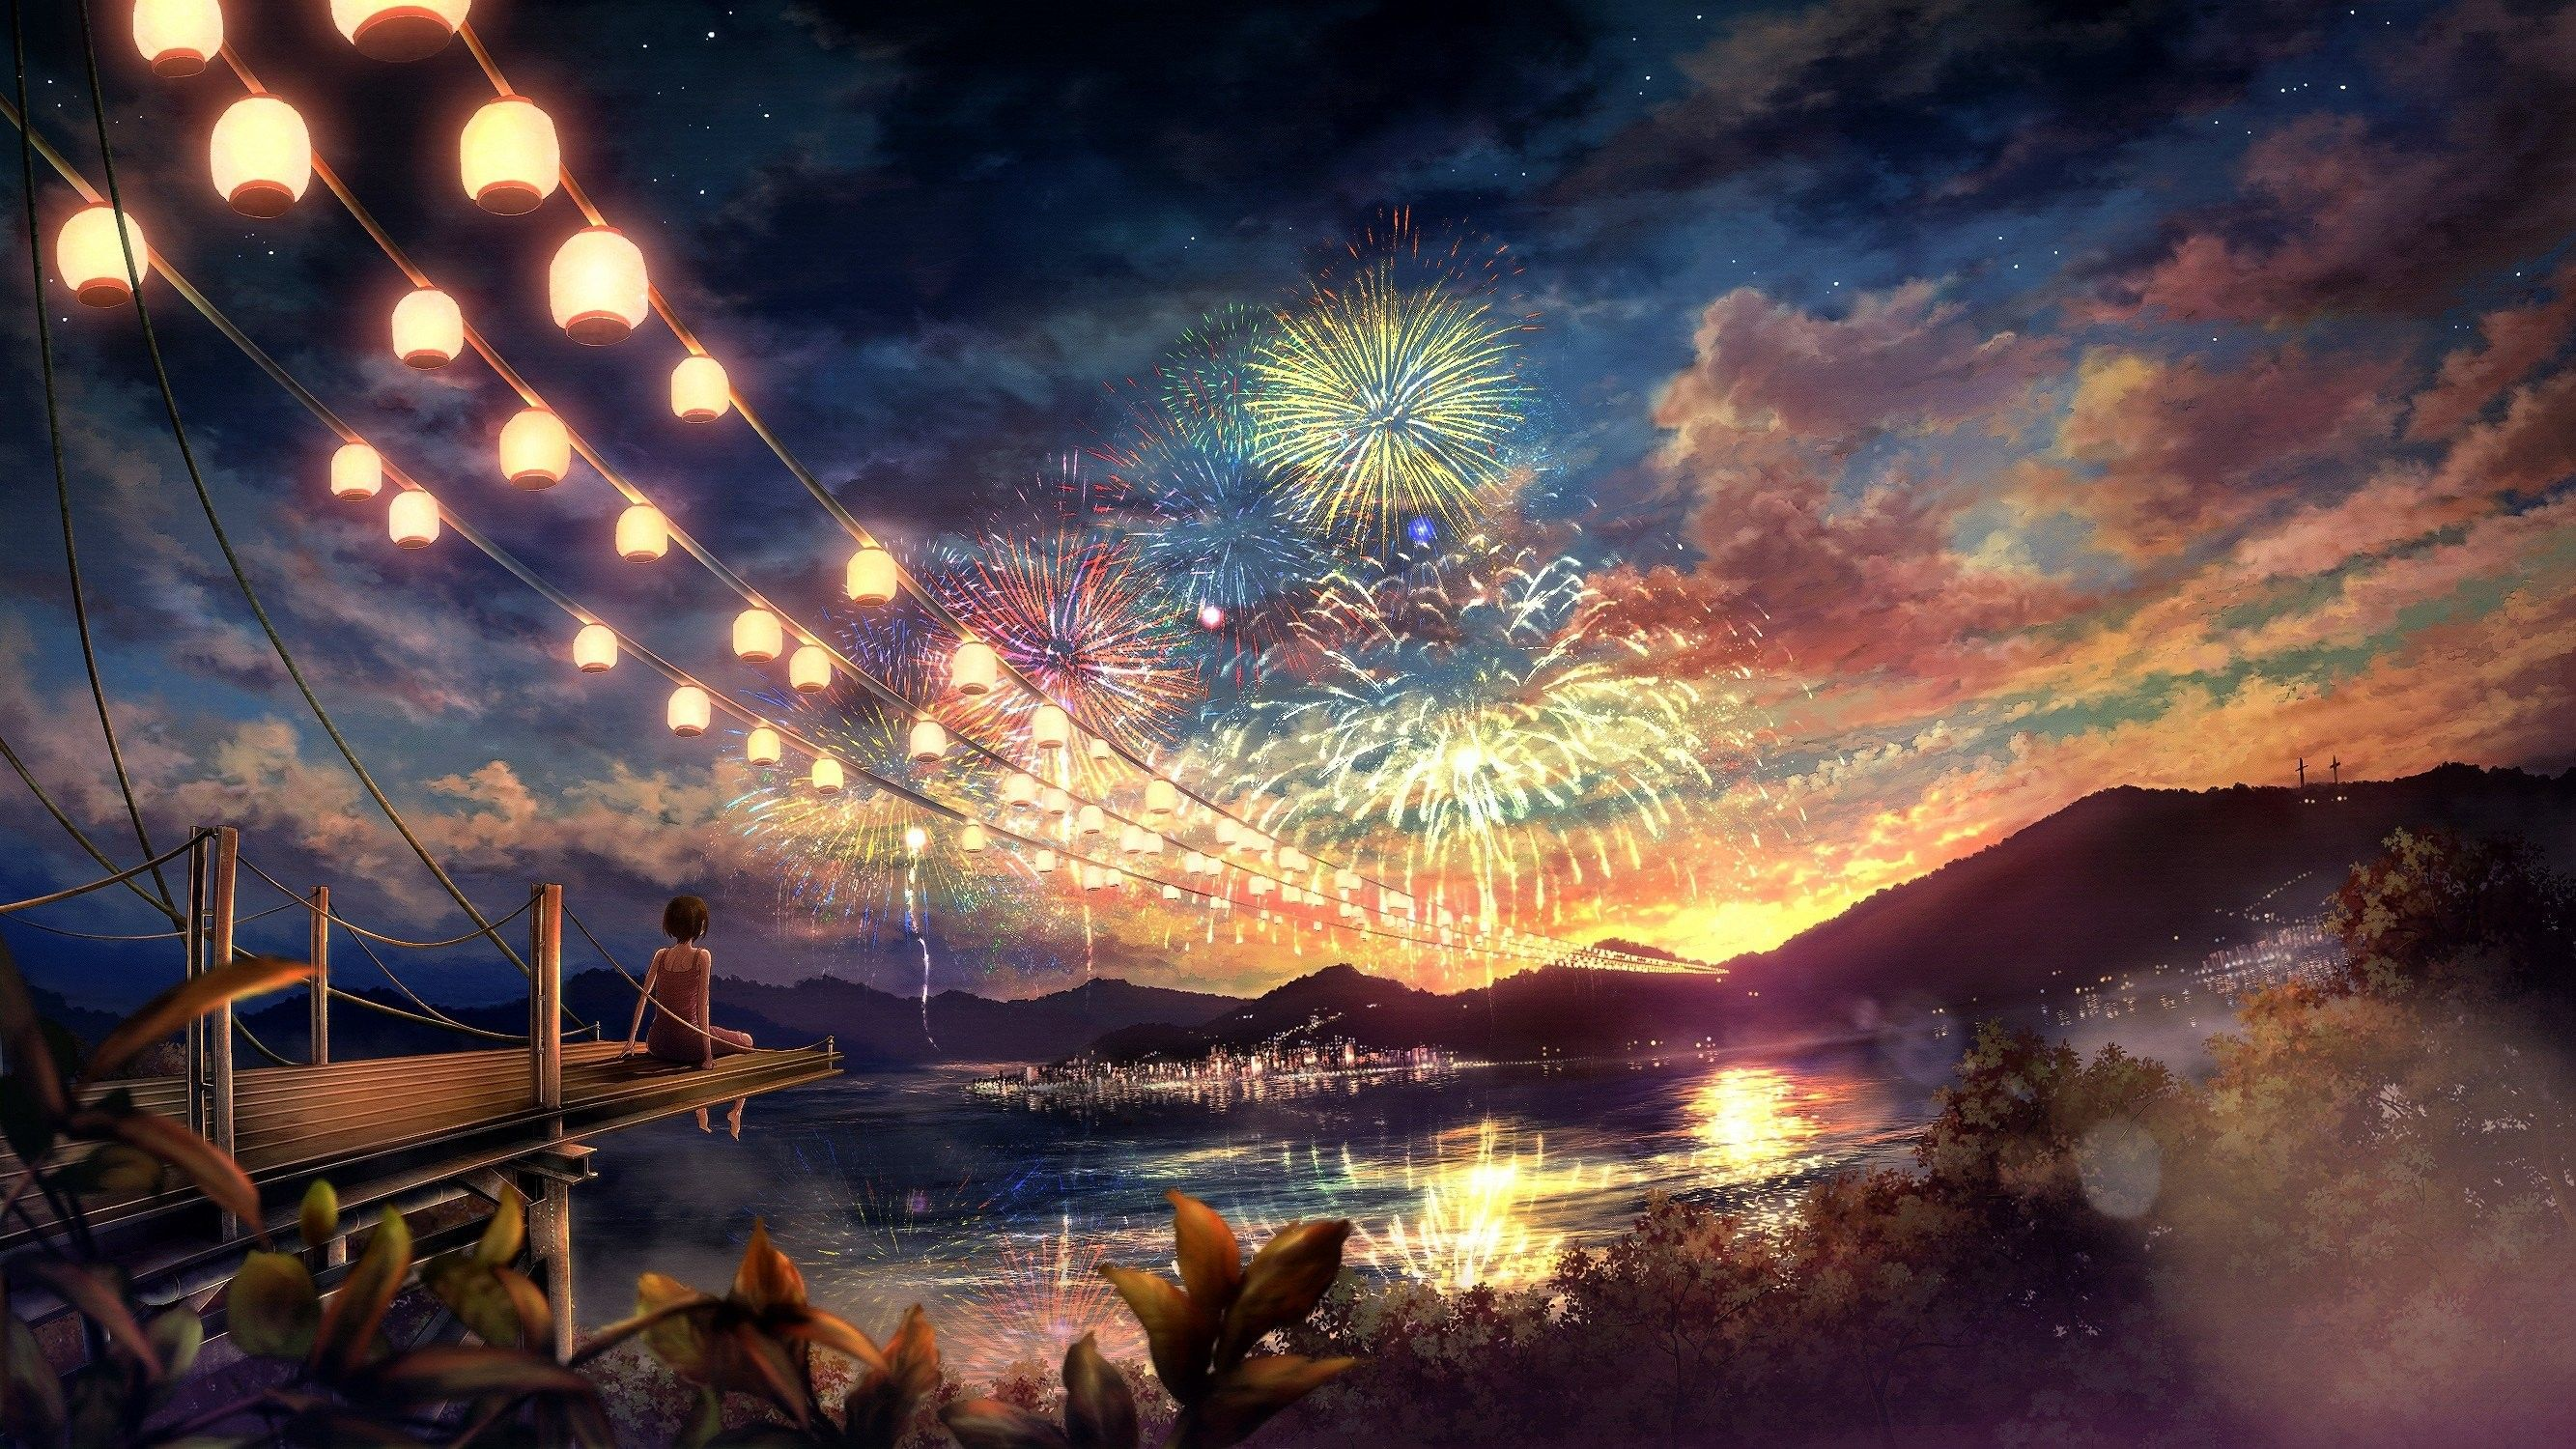 2667x1500 Night Anime Scenery High Quality Resolution